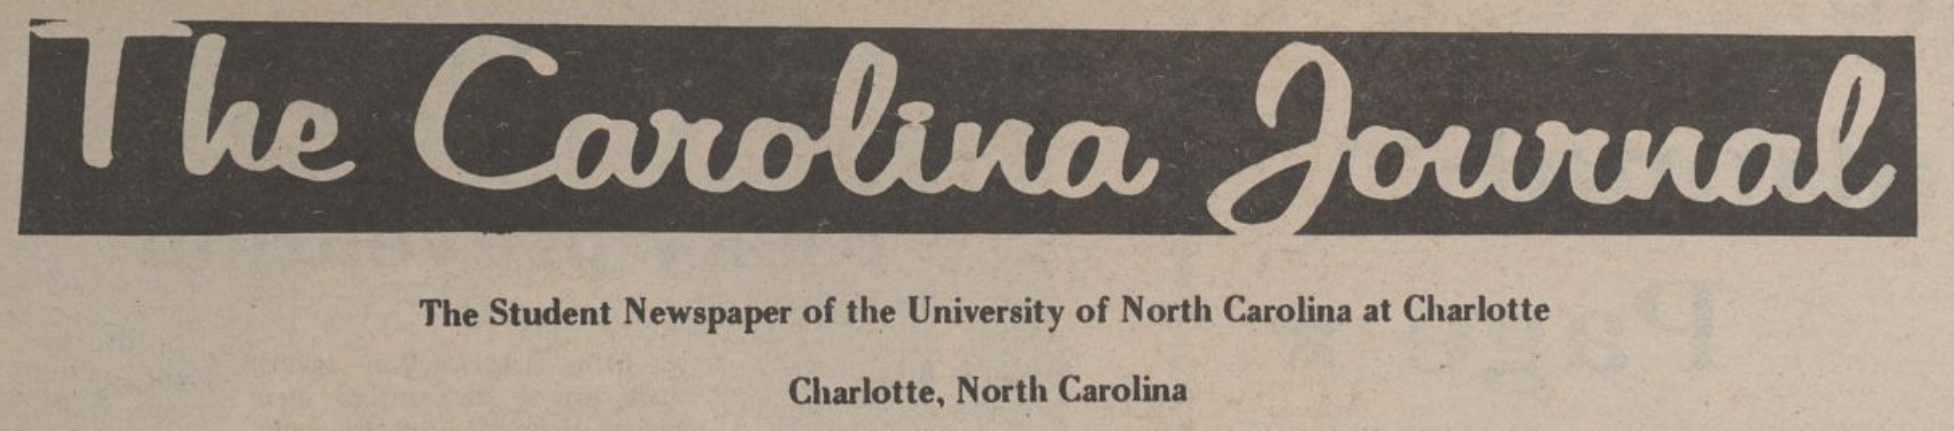 The Carolina Journal header. The subtitle reads: the student newspaper of the University of North Carolina at Charlotte. Charlotte, North Carolina.